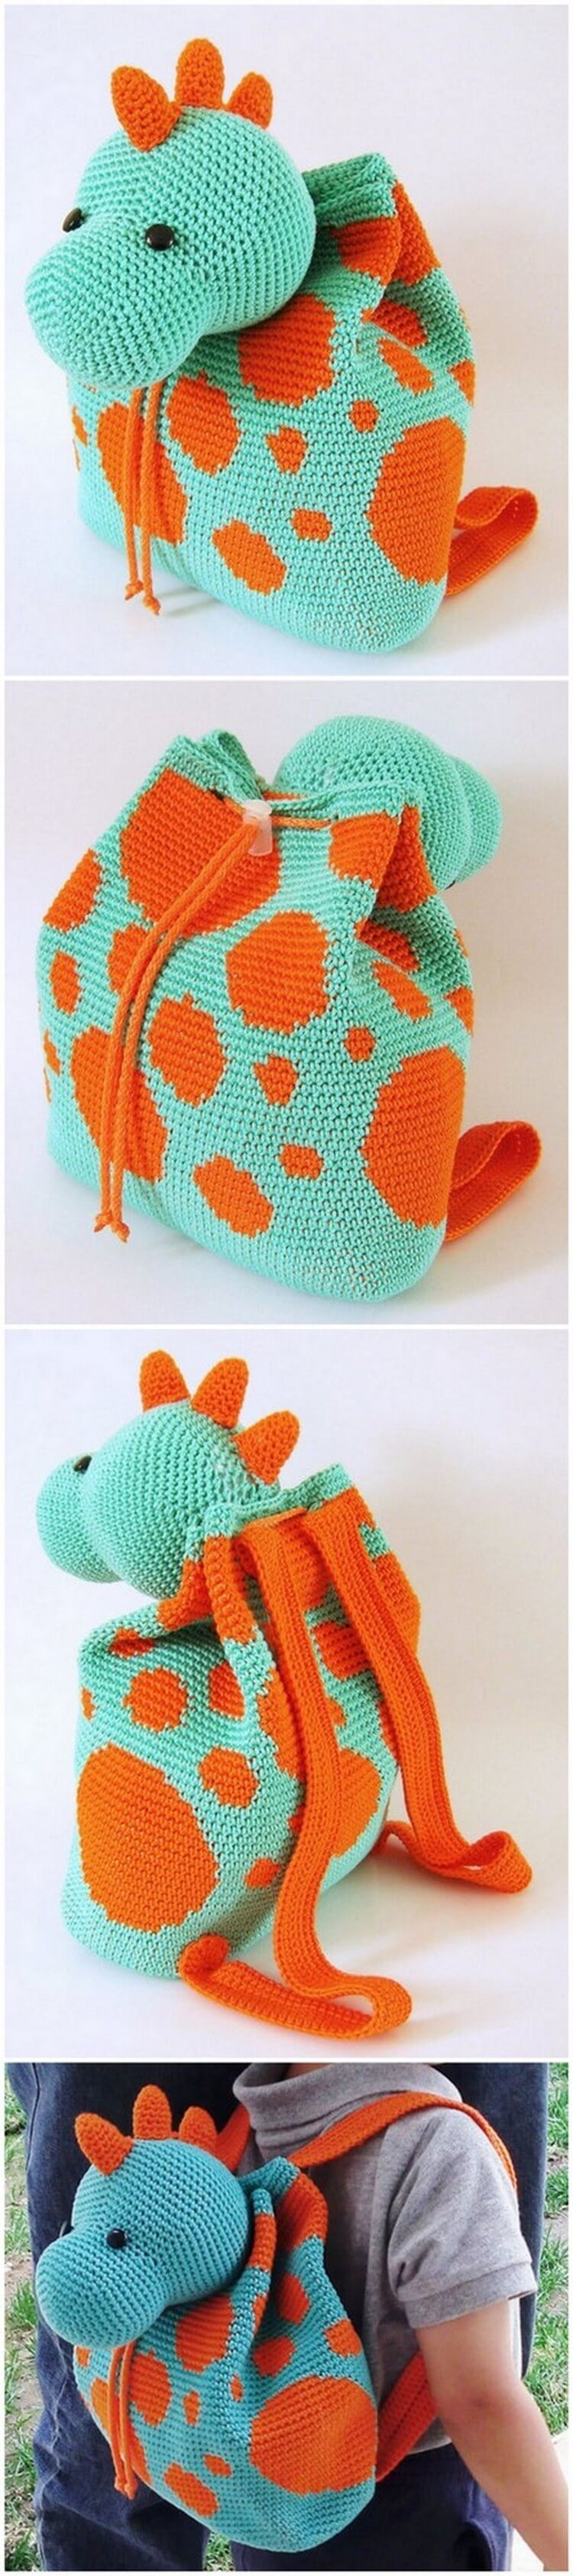 Crochet Backpack Pattern (77)